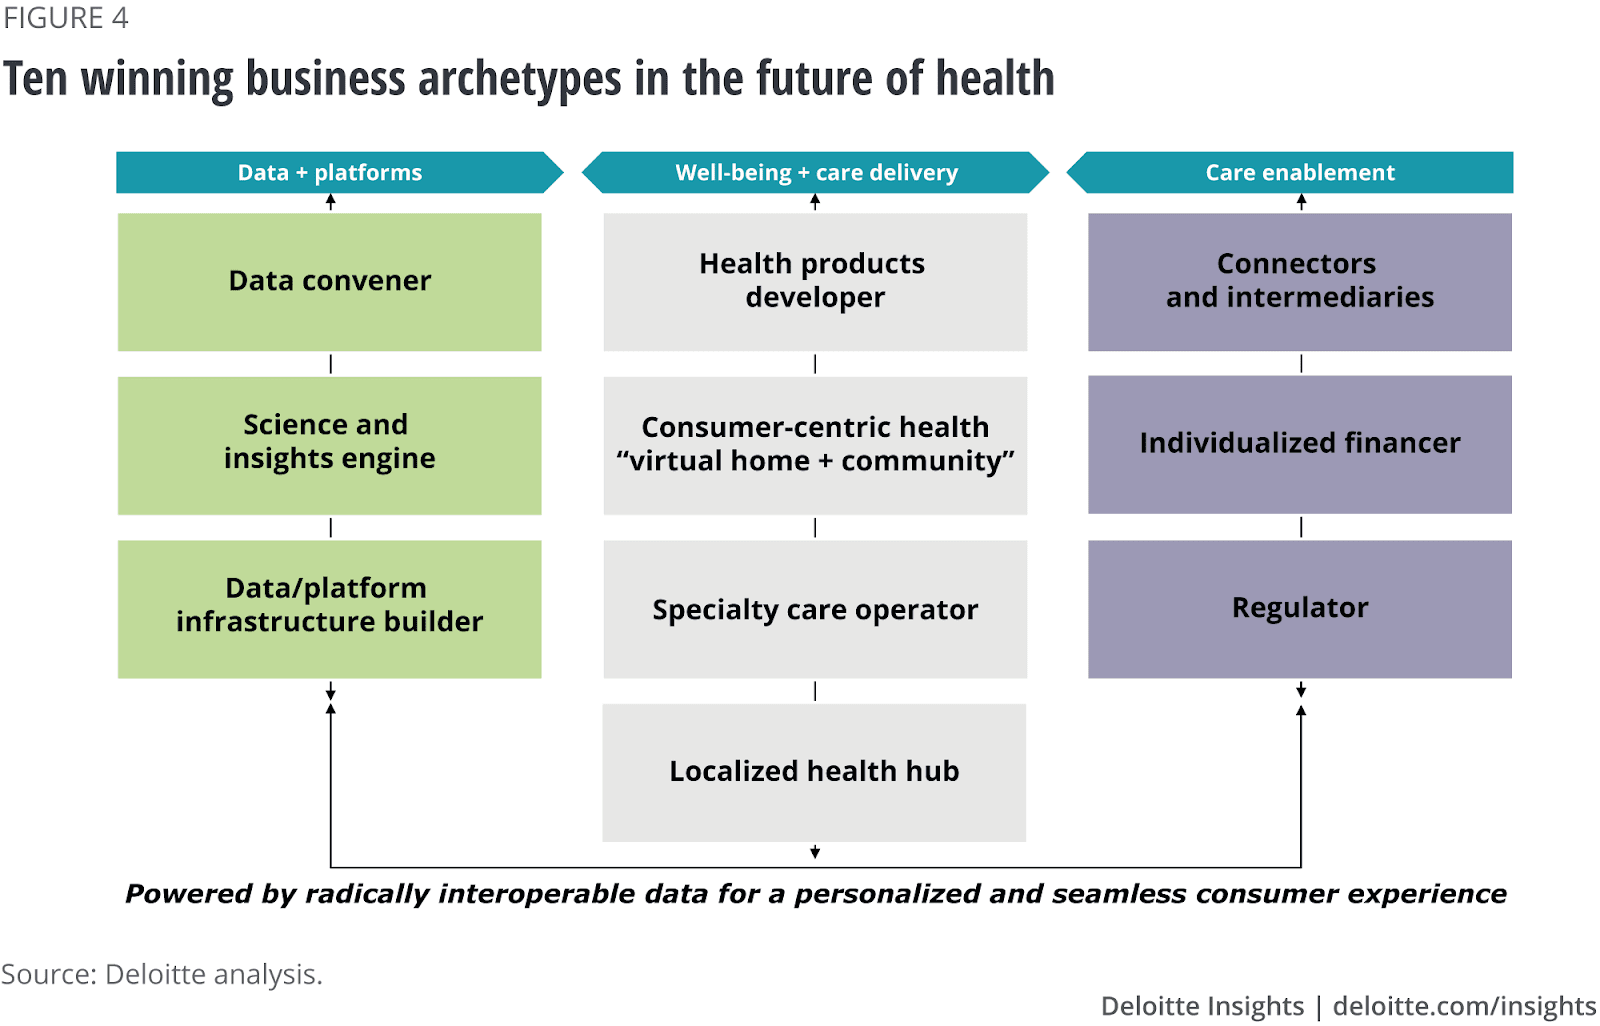 Ten winning business archetypes in the future of health